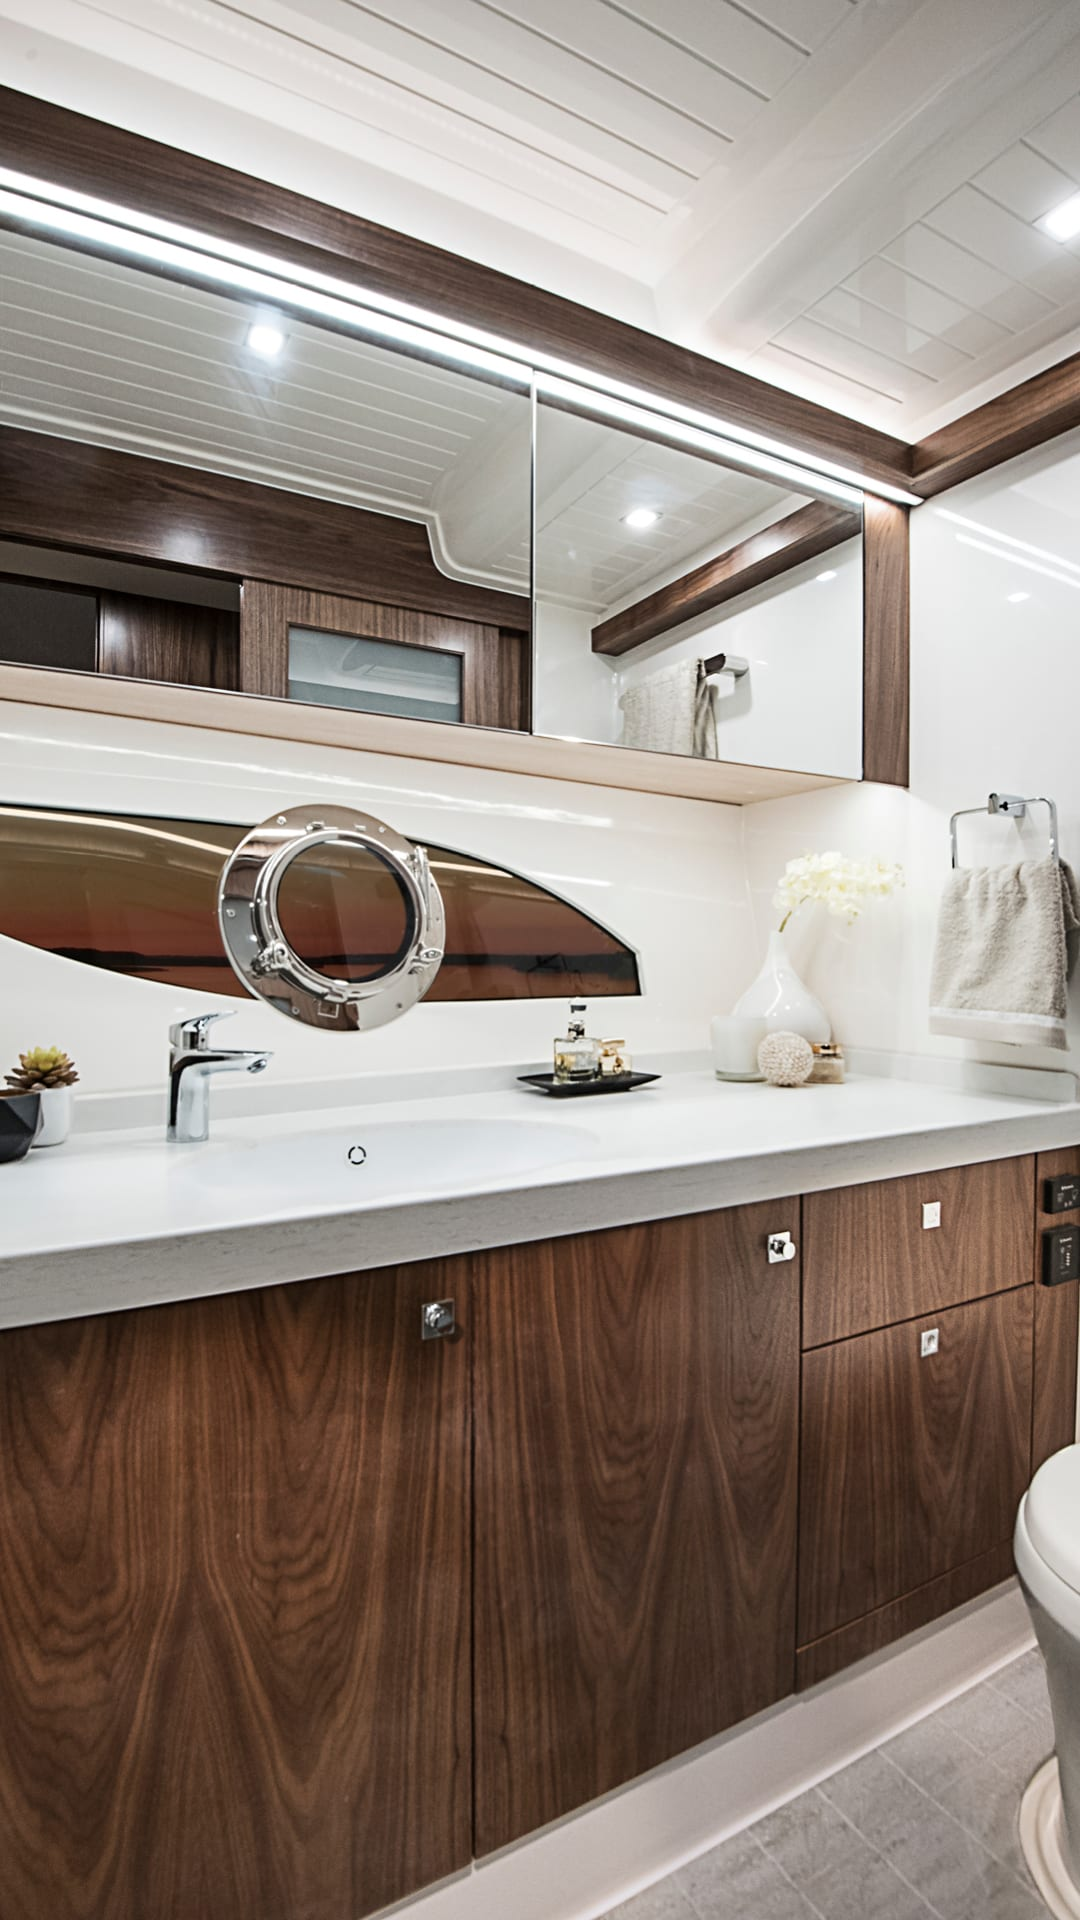 Riviera 68 Sports Motor Yacht Presidential Master Ensuite 01 – Satin Walnut Timber Finish